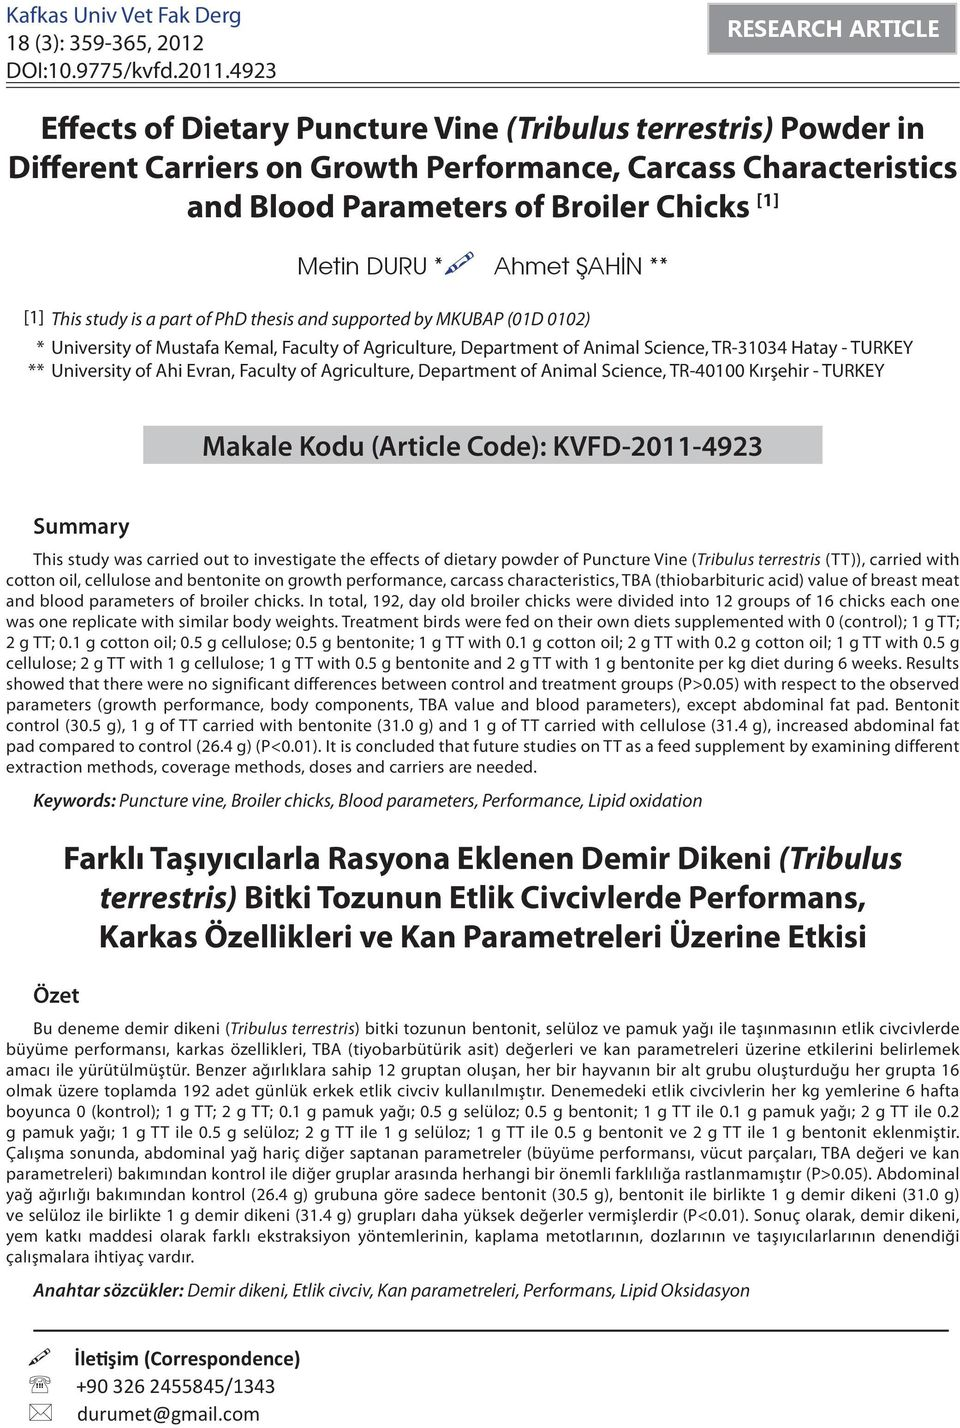 Metin DURU * Ahmet ŞAHİN ** [1] This study is a part of PhD thesis and supported by MKUBAP (01D 0102) * University of Mustafa Kemal, Faculty of Agriculture, Department of Animal Science, TR-31034